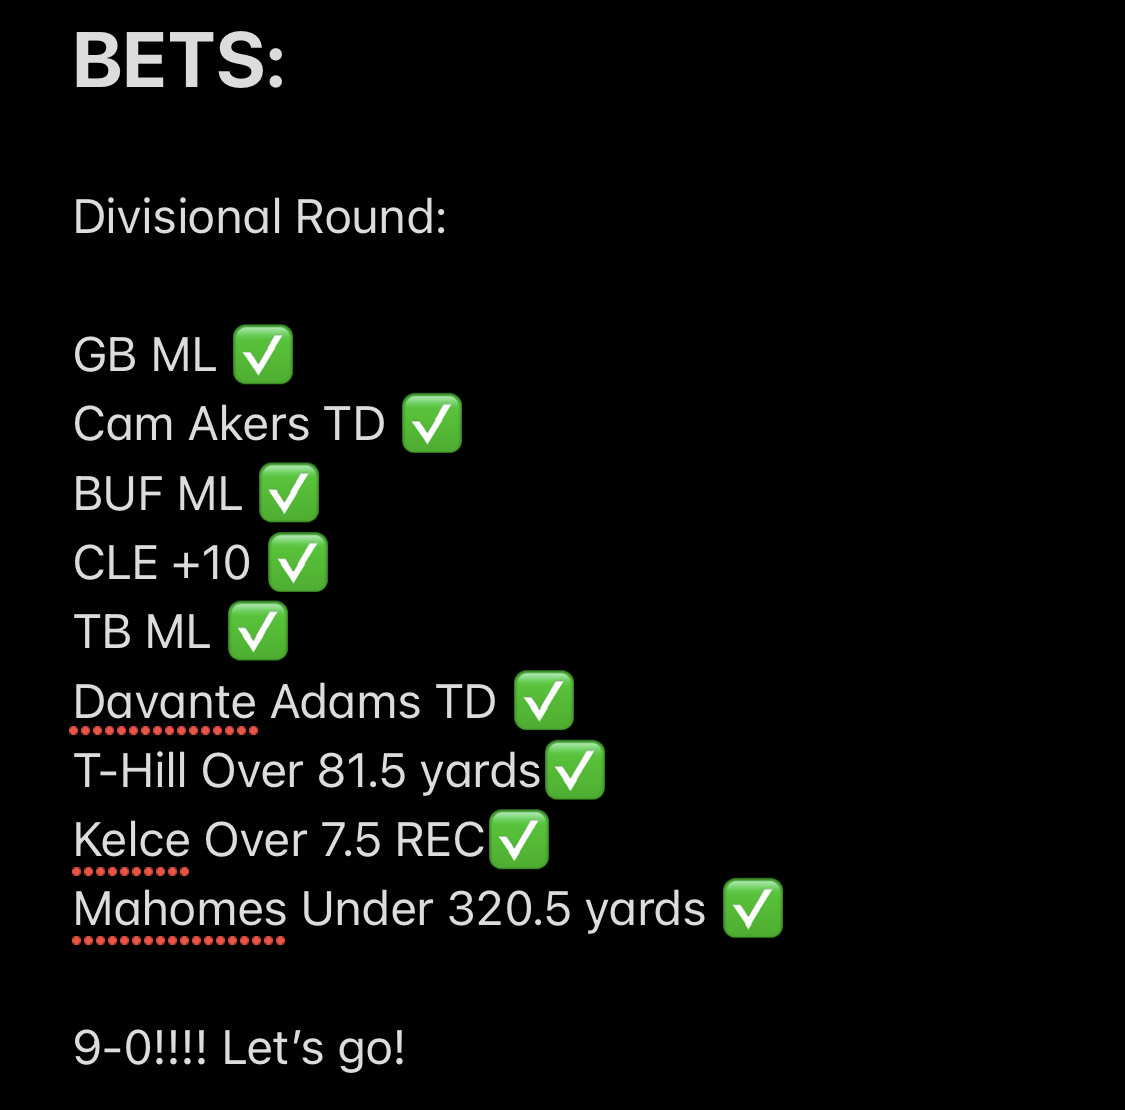 We just DOMINATED last week's #DivisionalRound Betting. Get in on our #NFL #NBA and #MMA bets for this weekend here:   Only $25 for a month. #GamblingTwitter #NFLTwitter #NBAtwitter #MMATwitter